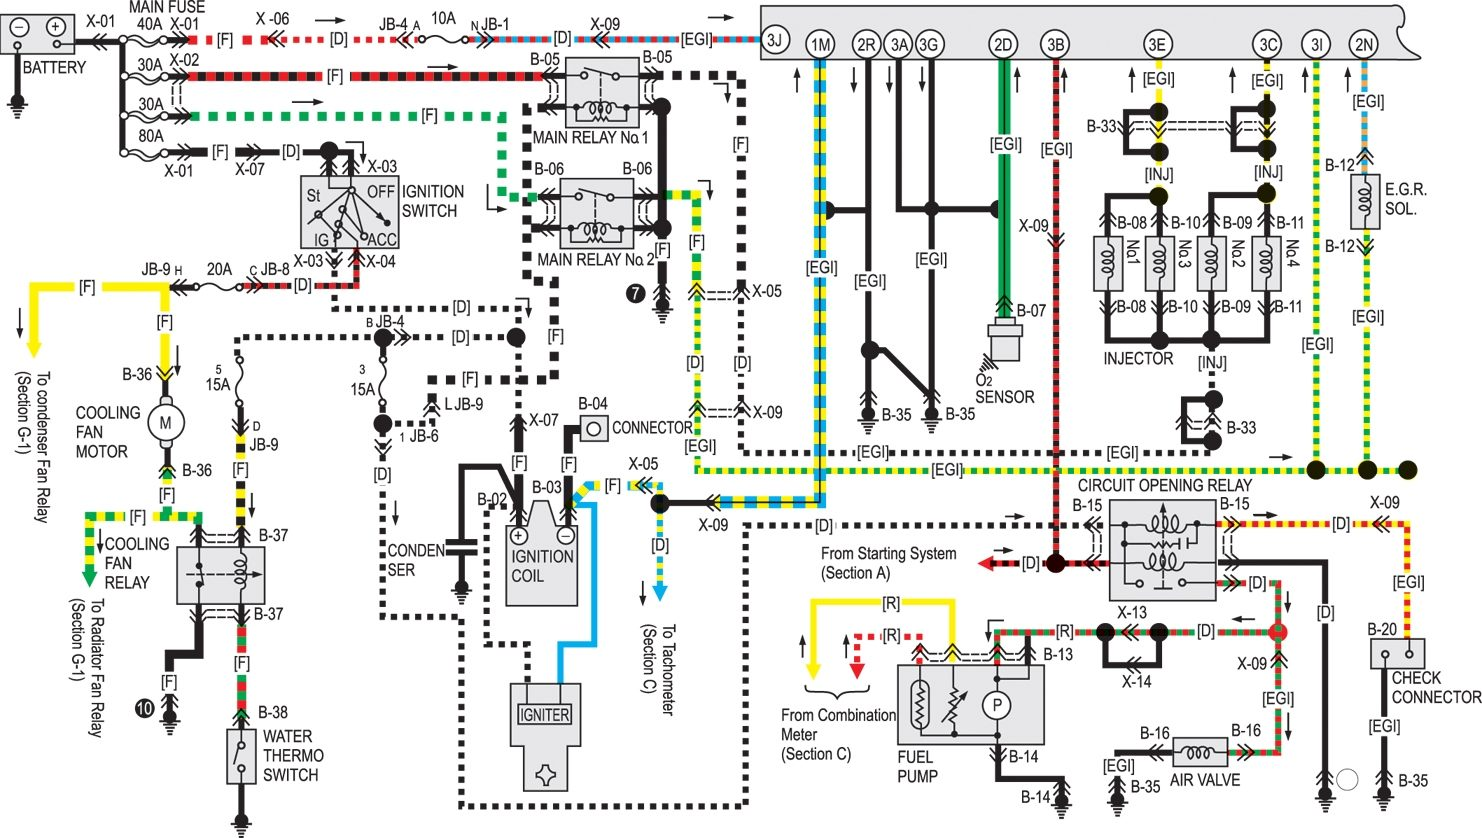 wiring schematics pdf wiring diagram rh blaknwyt co Toyota Electrical Wiring Diagram automobile wiring diagram pdf